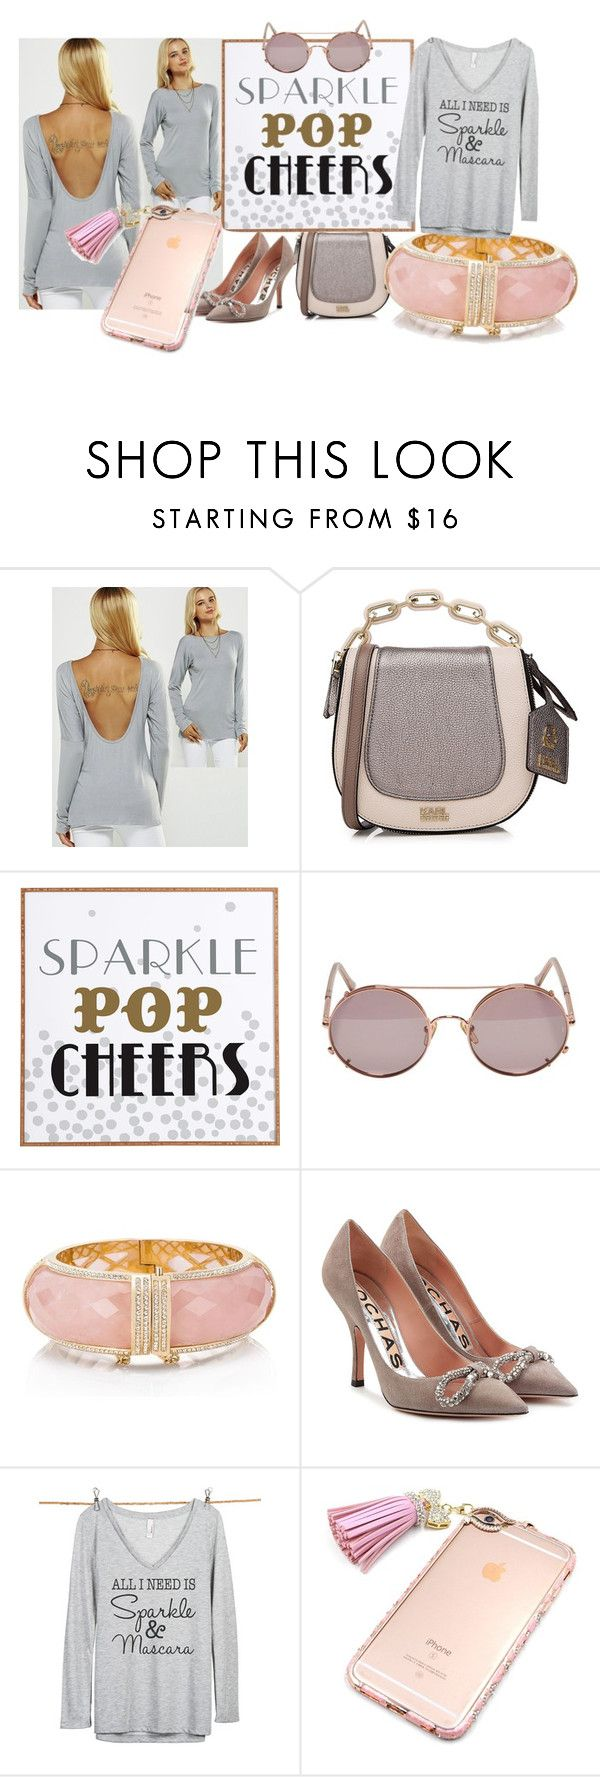 """""""Unbenannt #5994"""" by snowmoon ❤ liked on Polyvore featuring Karl Lagerfeld, Dot & Bo, Sunday Somewhere, Kate Spade, Rochas and Thread Tank"""